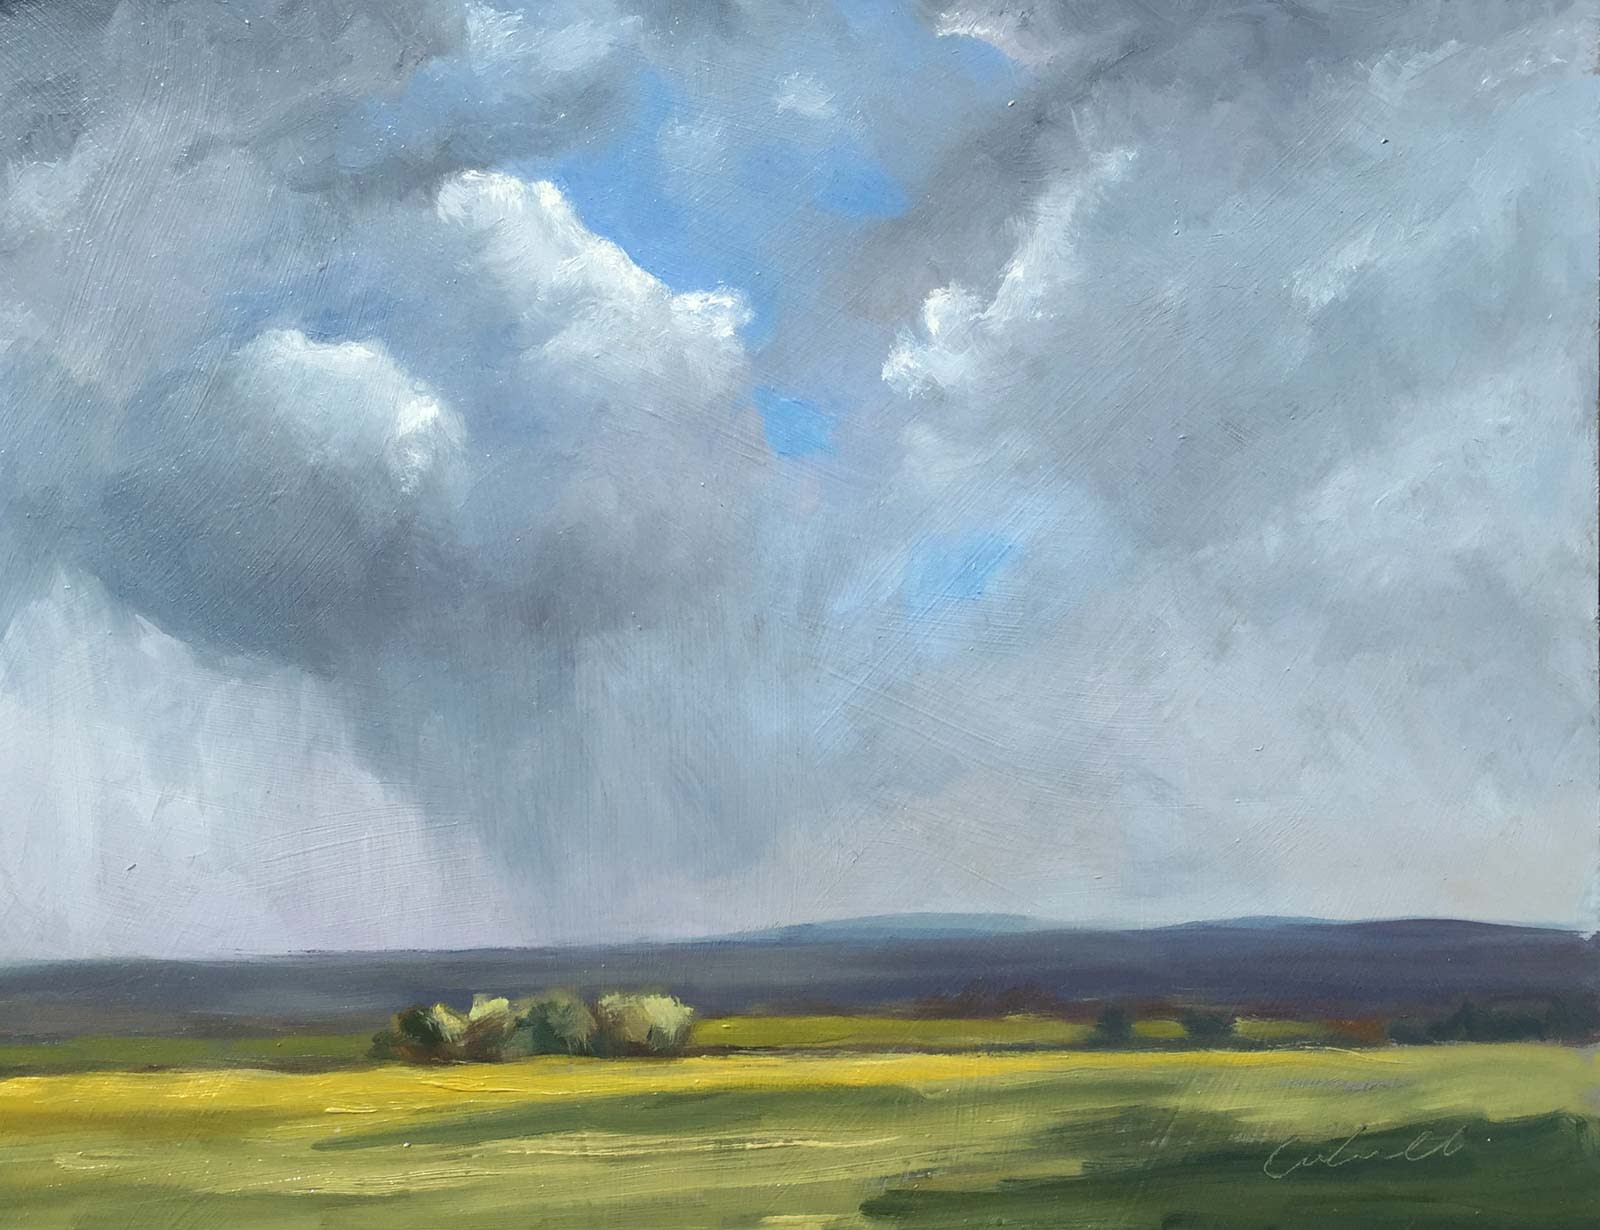 Passing Showers, South Downs